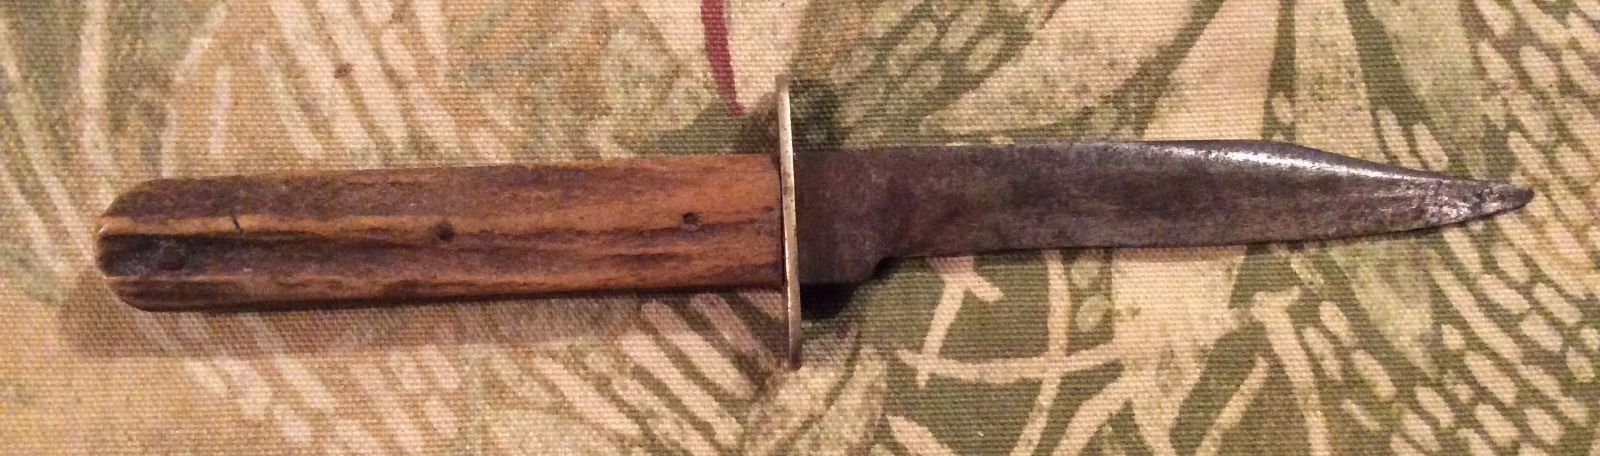 VINTAGE JIM BOWIE KNIFE STAG GRIP J. ALLEN & Sons SHEFFIELD ENGLAND Non XLL